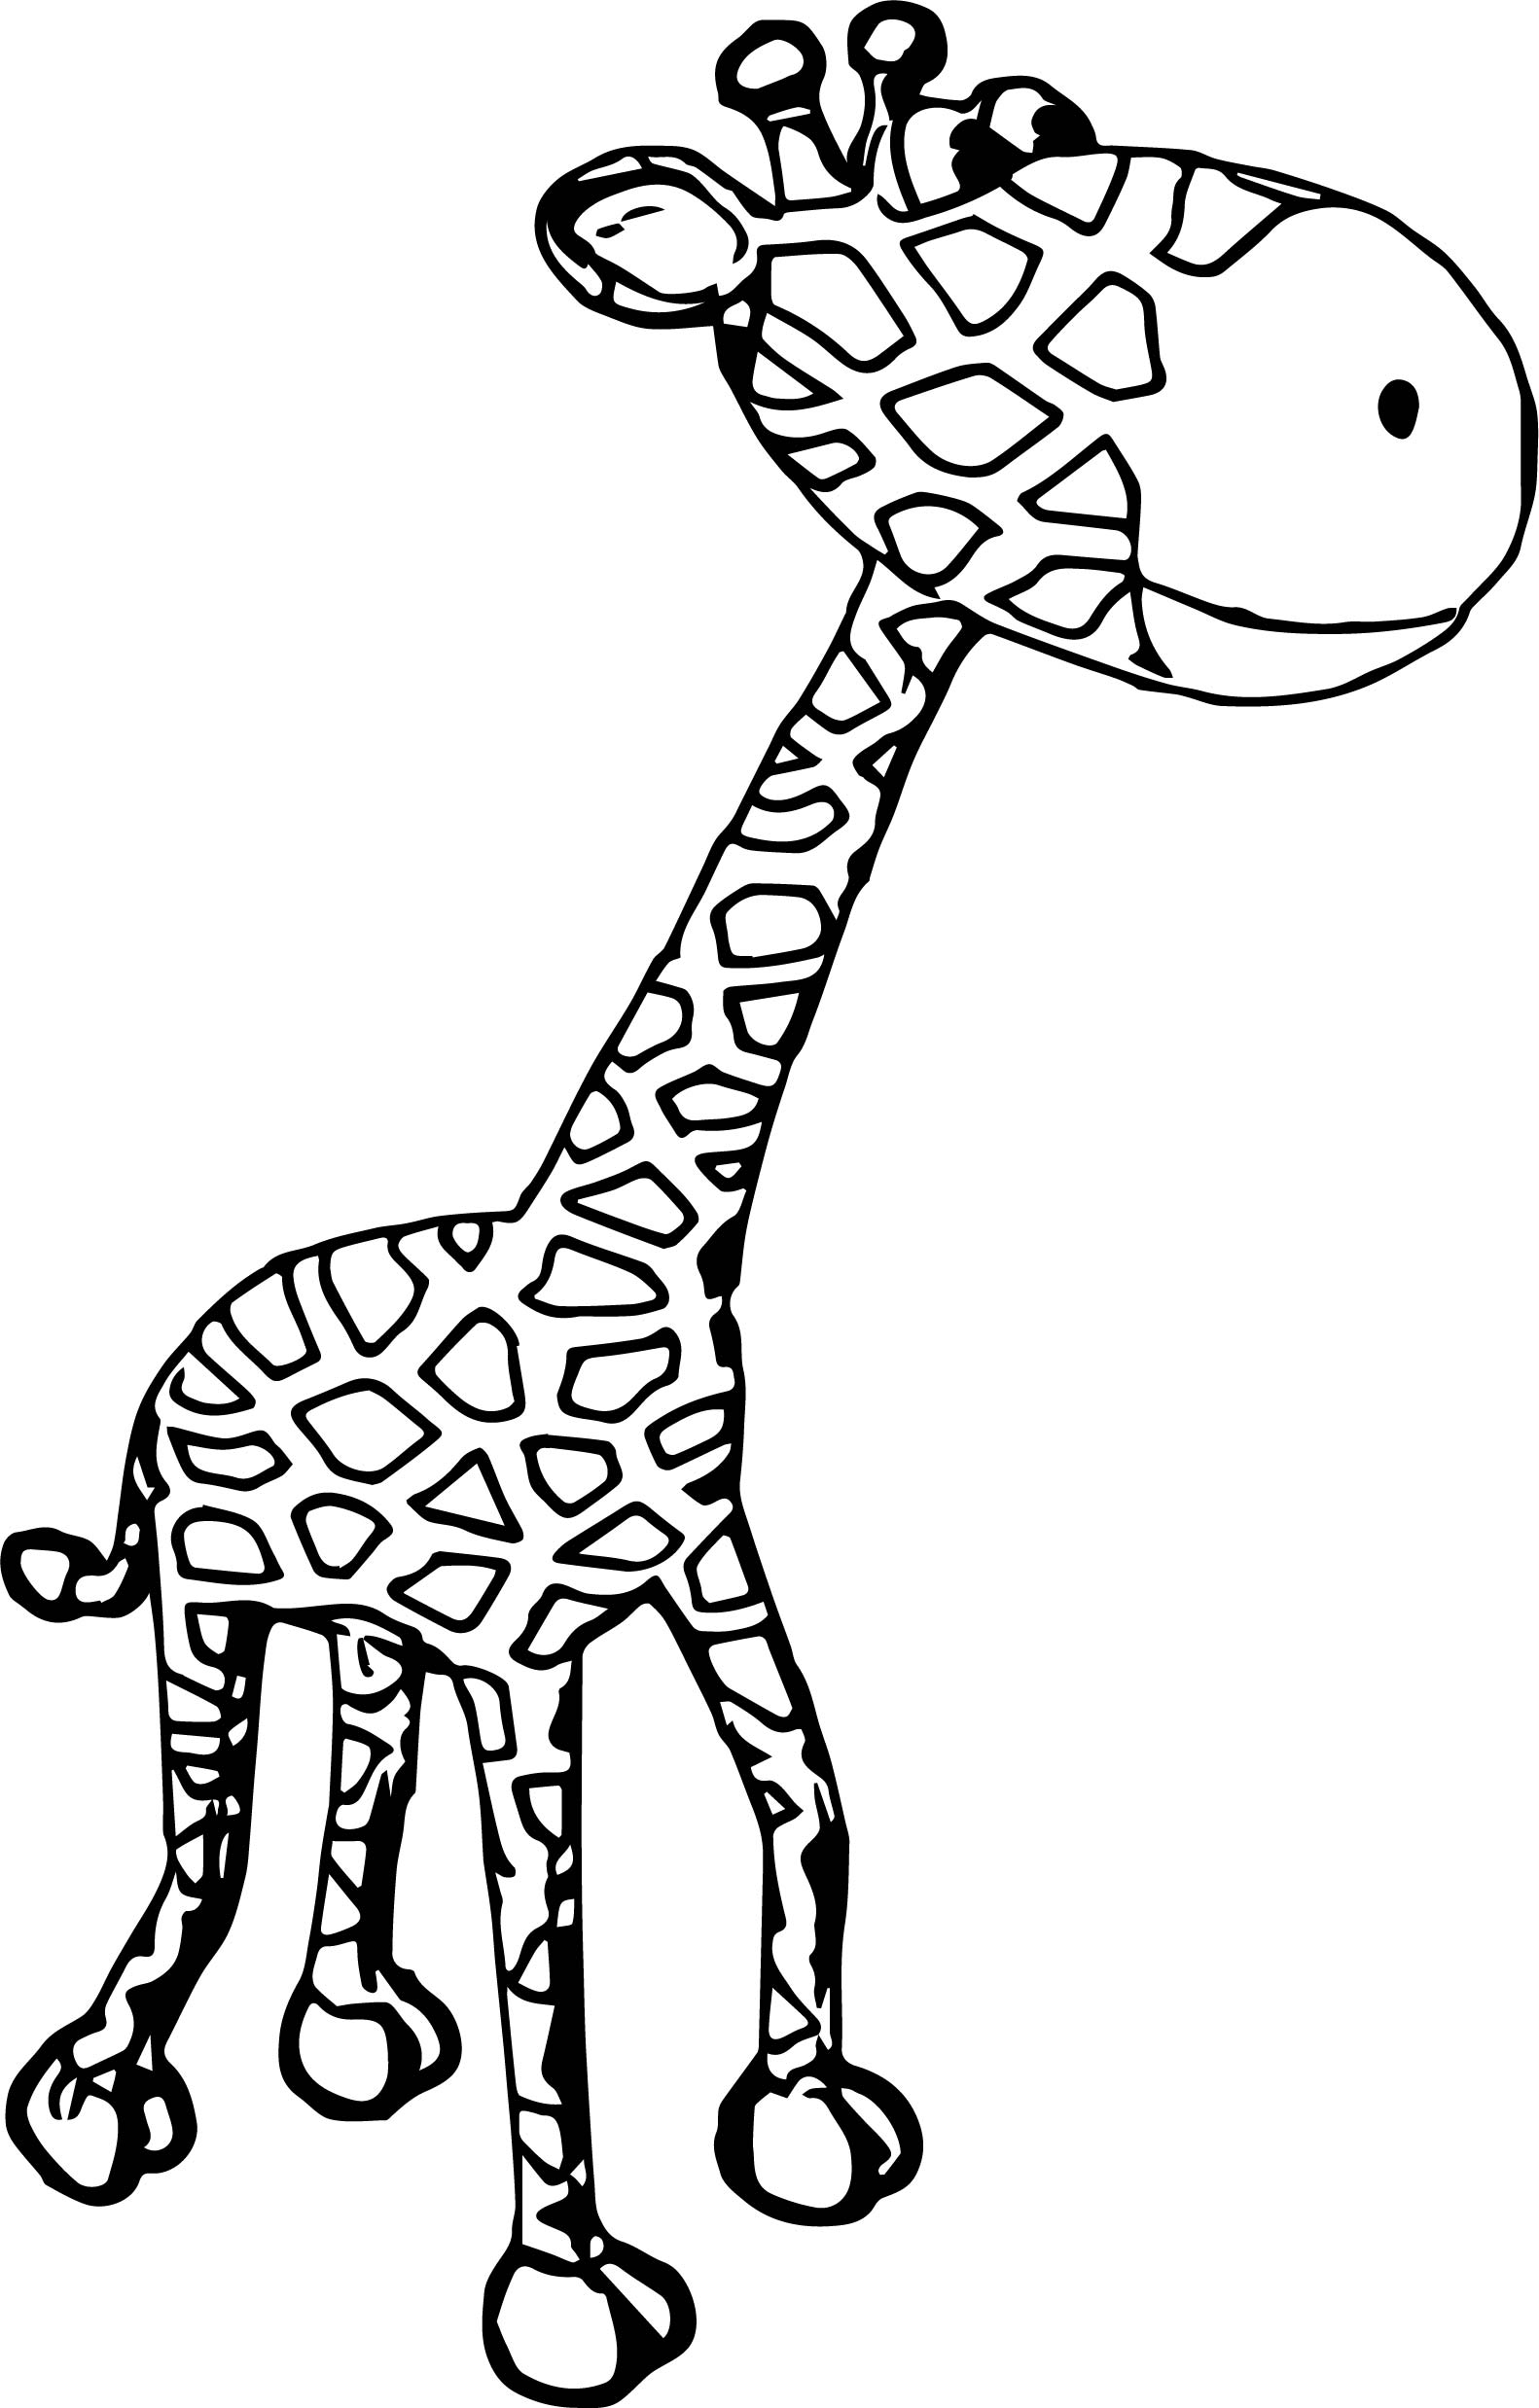 cartoon giraffe coloring pages - giraffe perspective coloring page